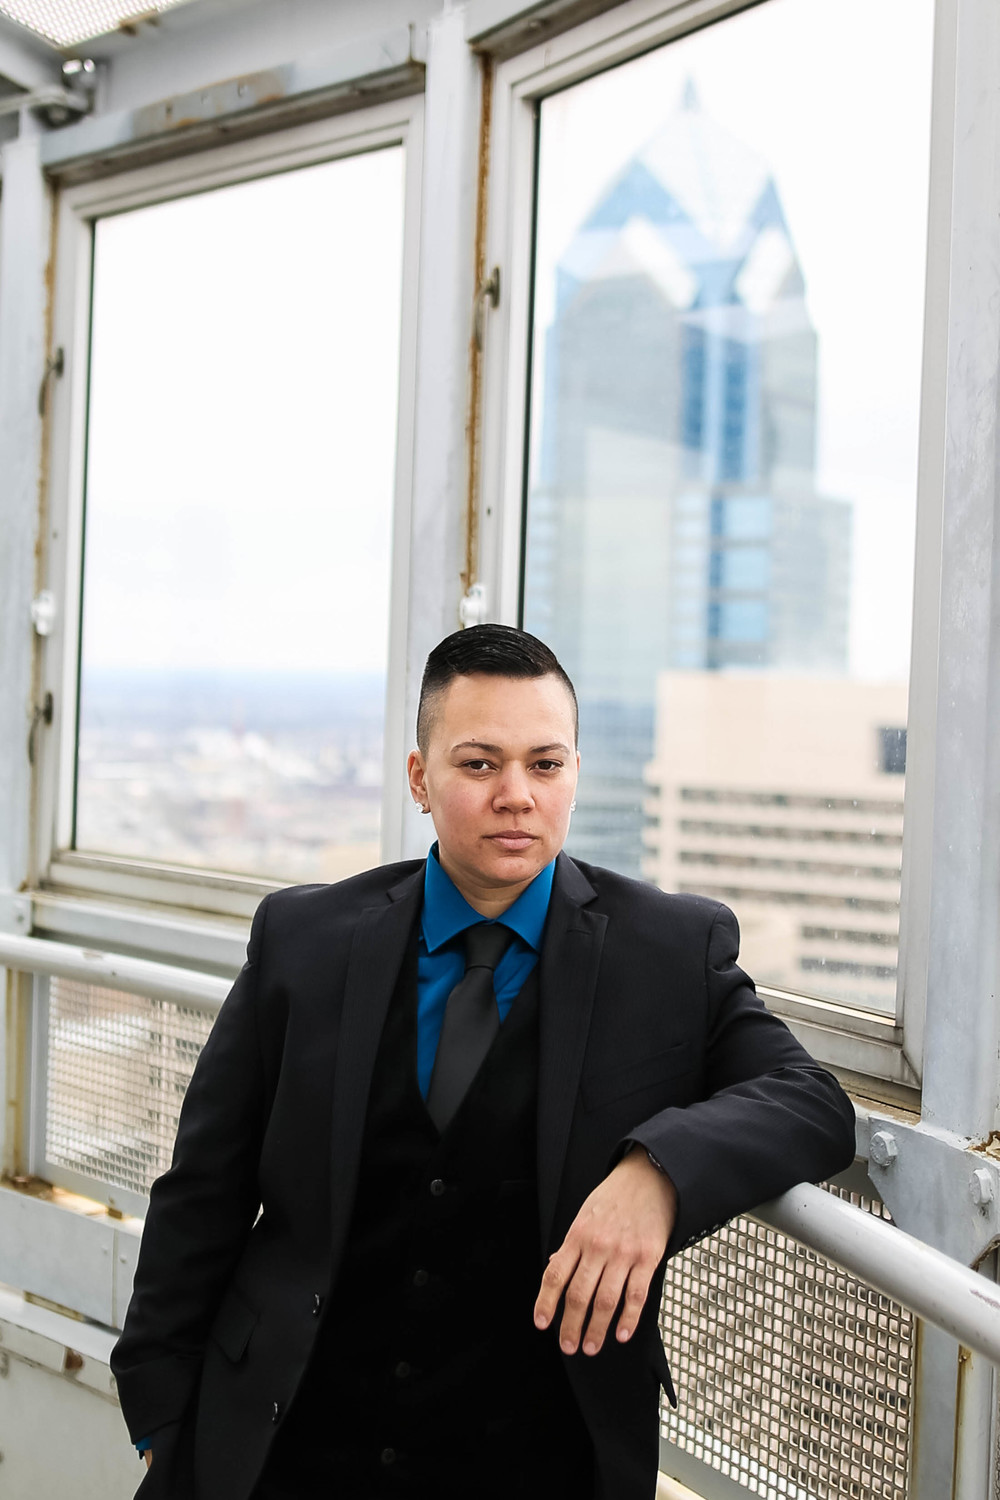 Philadelphia Butch Bride at City Hall Lesbian Wedding